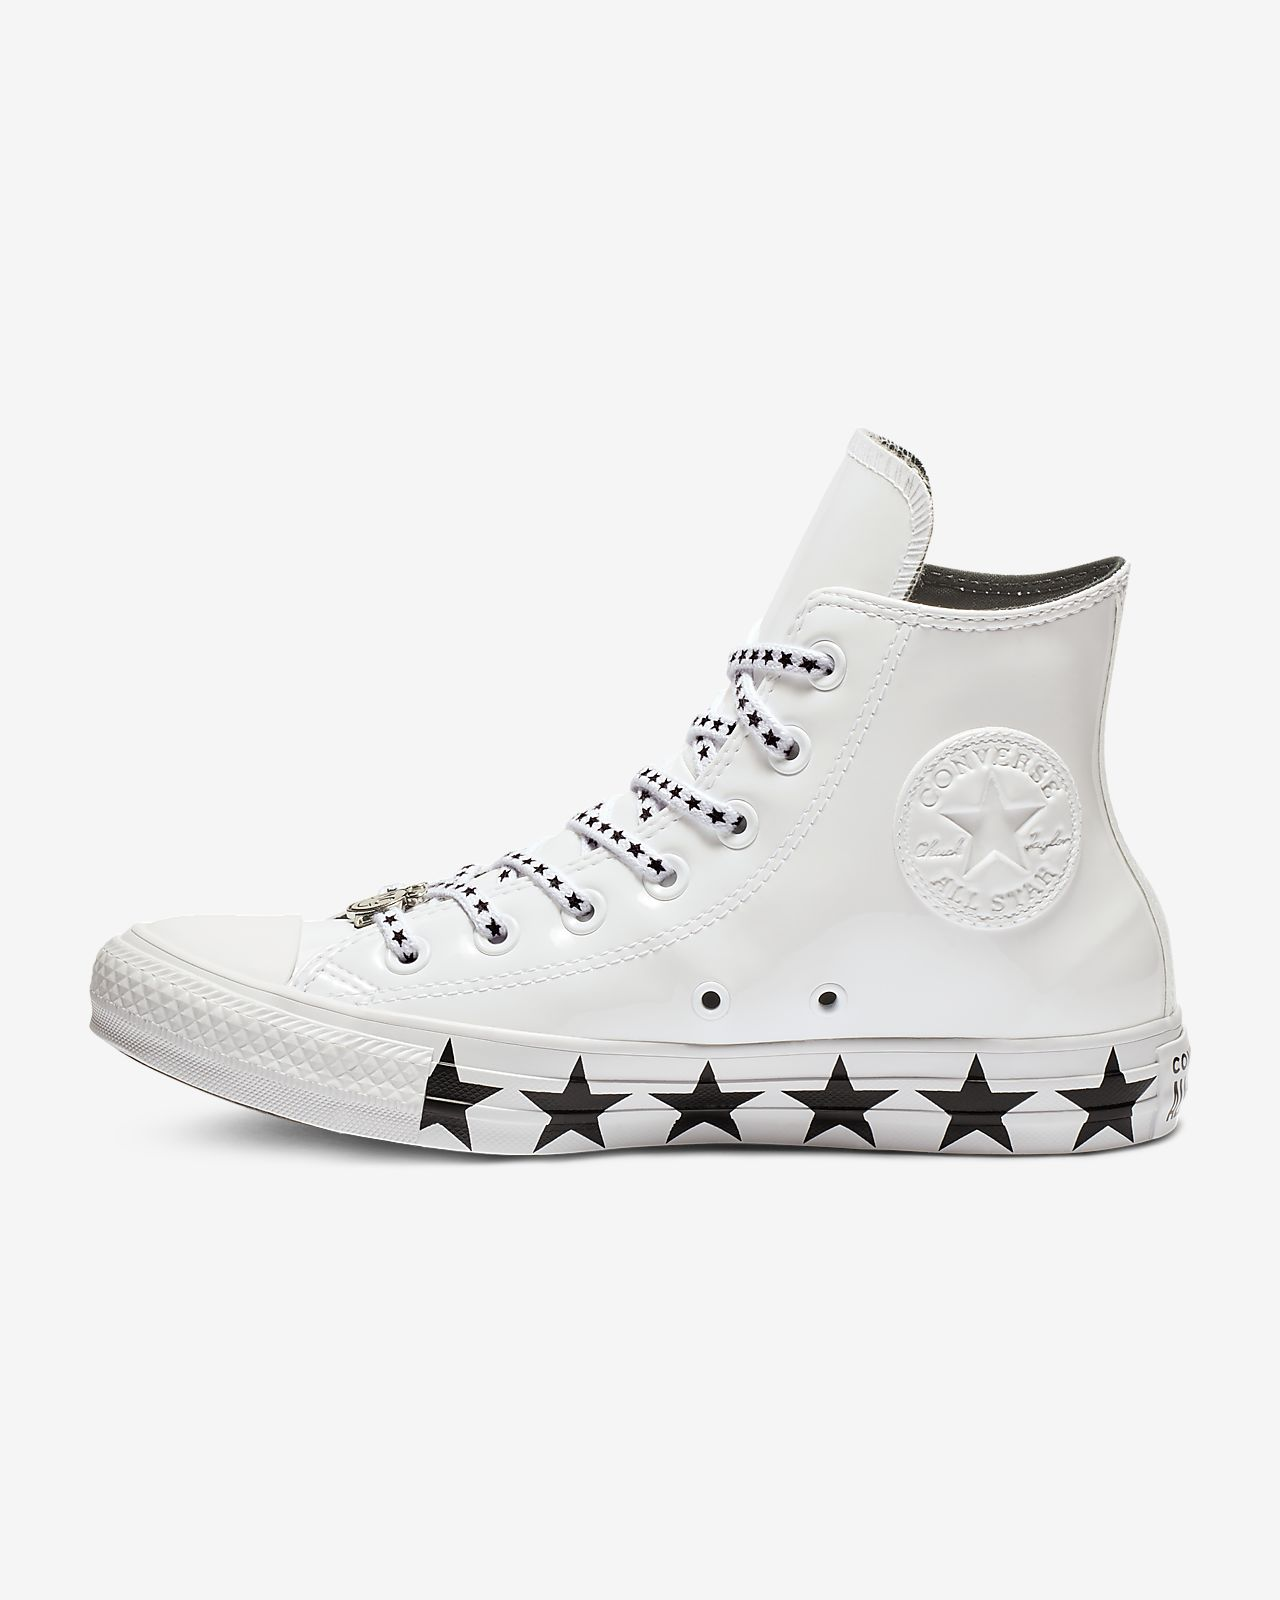 9cbb59868574 ... switzerland converse x miley cyrus chuck taylor all star faux patent  high top womens shoe 56a11